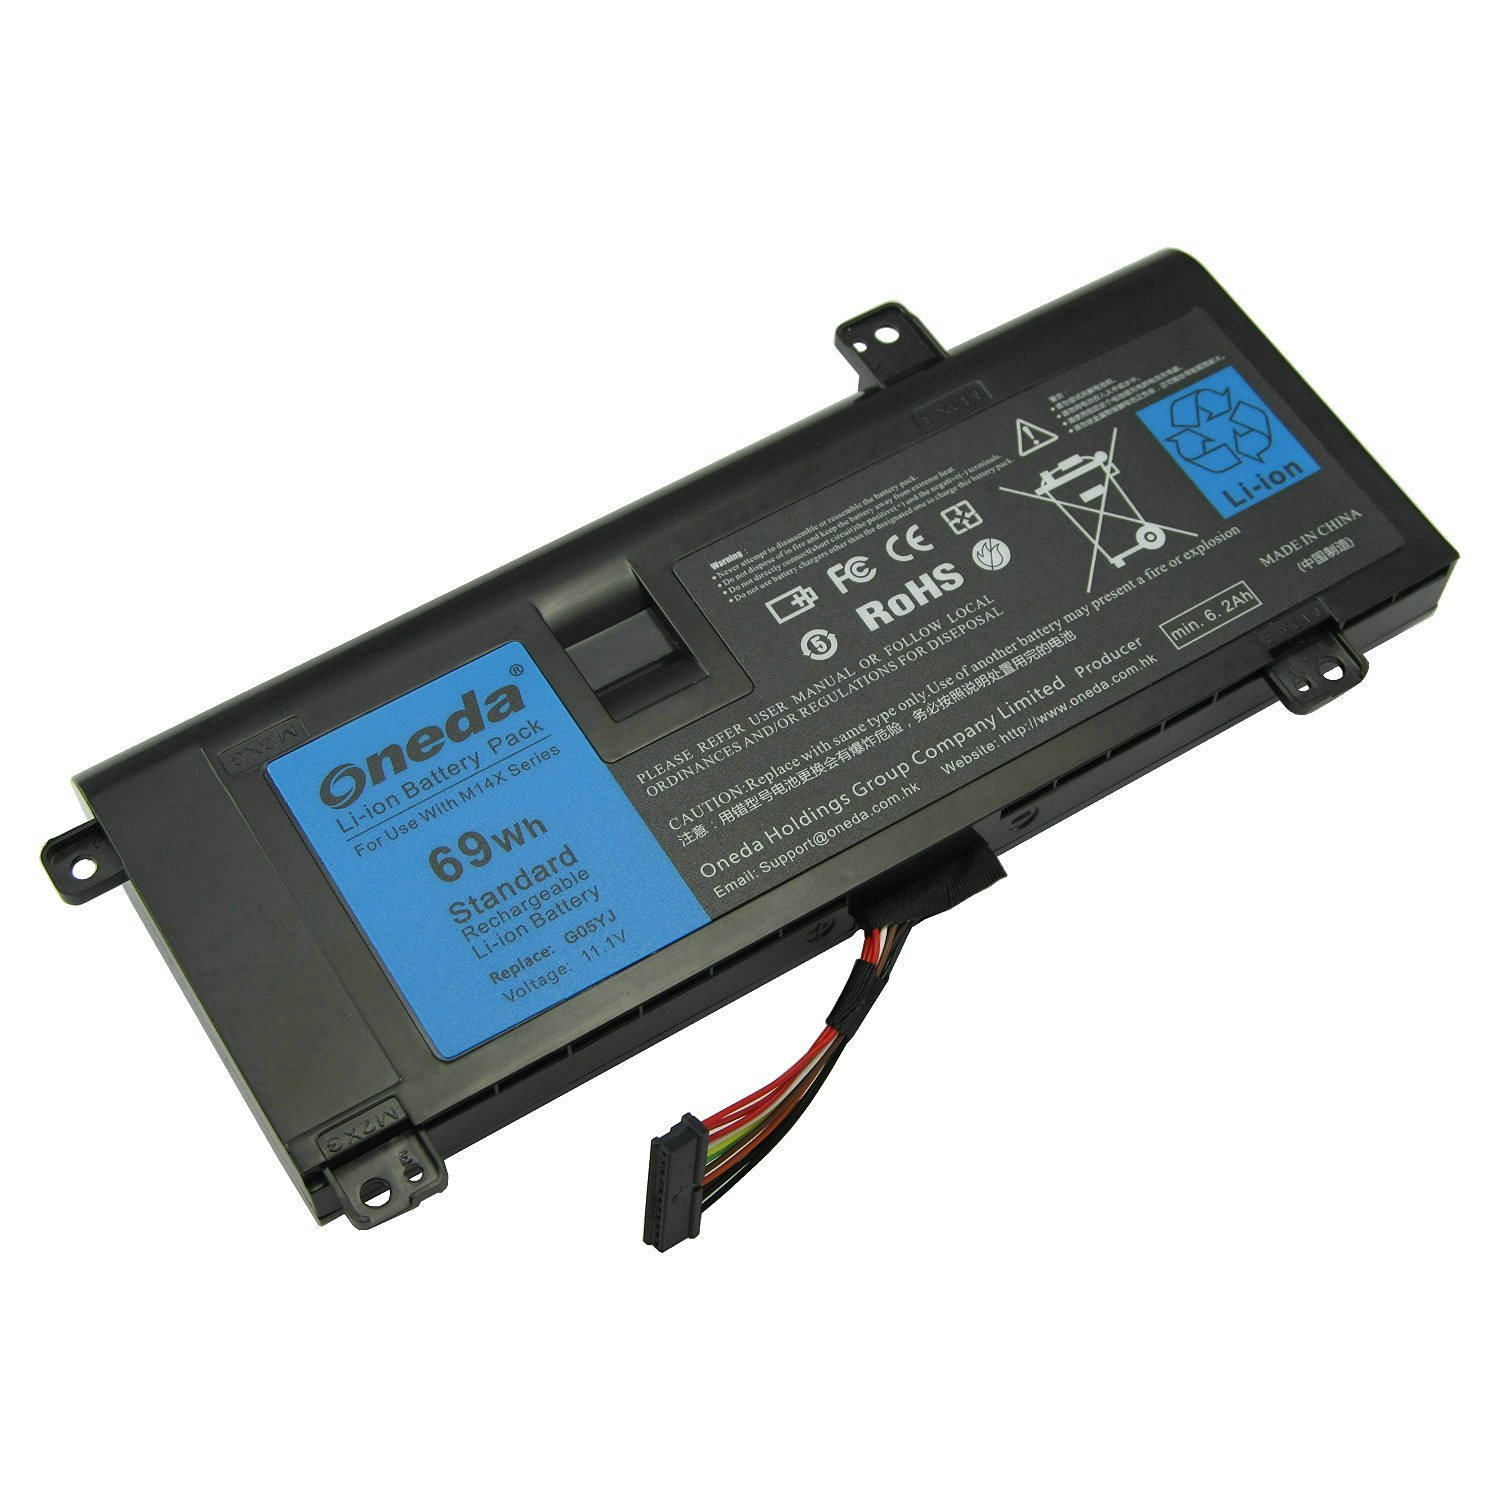 Oneda New High Performance Laptop Notebook Battery for Dell Alienware 14 A14 M14X R1 R3 R4 14D-1528 ALW14D P39G Series ; Fits P/N: G05YJ 0G05YJ Y3PN0 8X70T Replacement batteries Pack [11.1V / 69Wh]